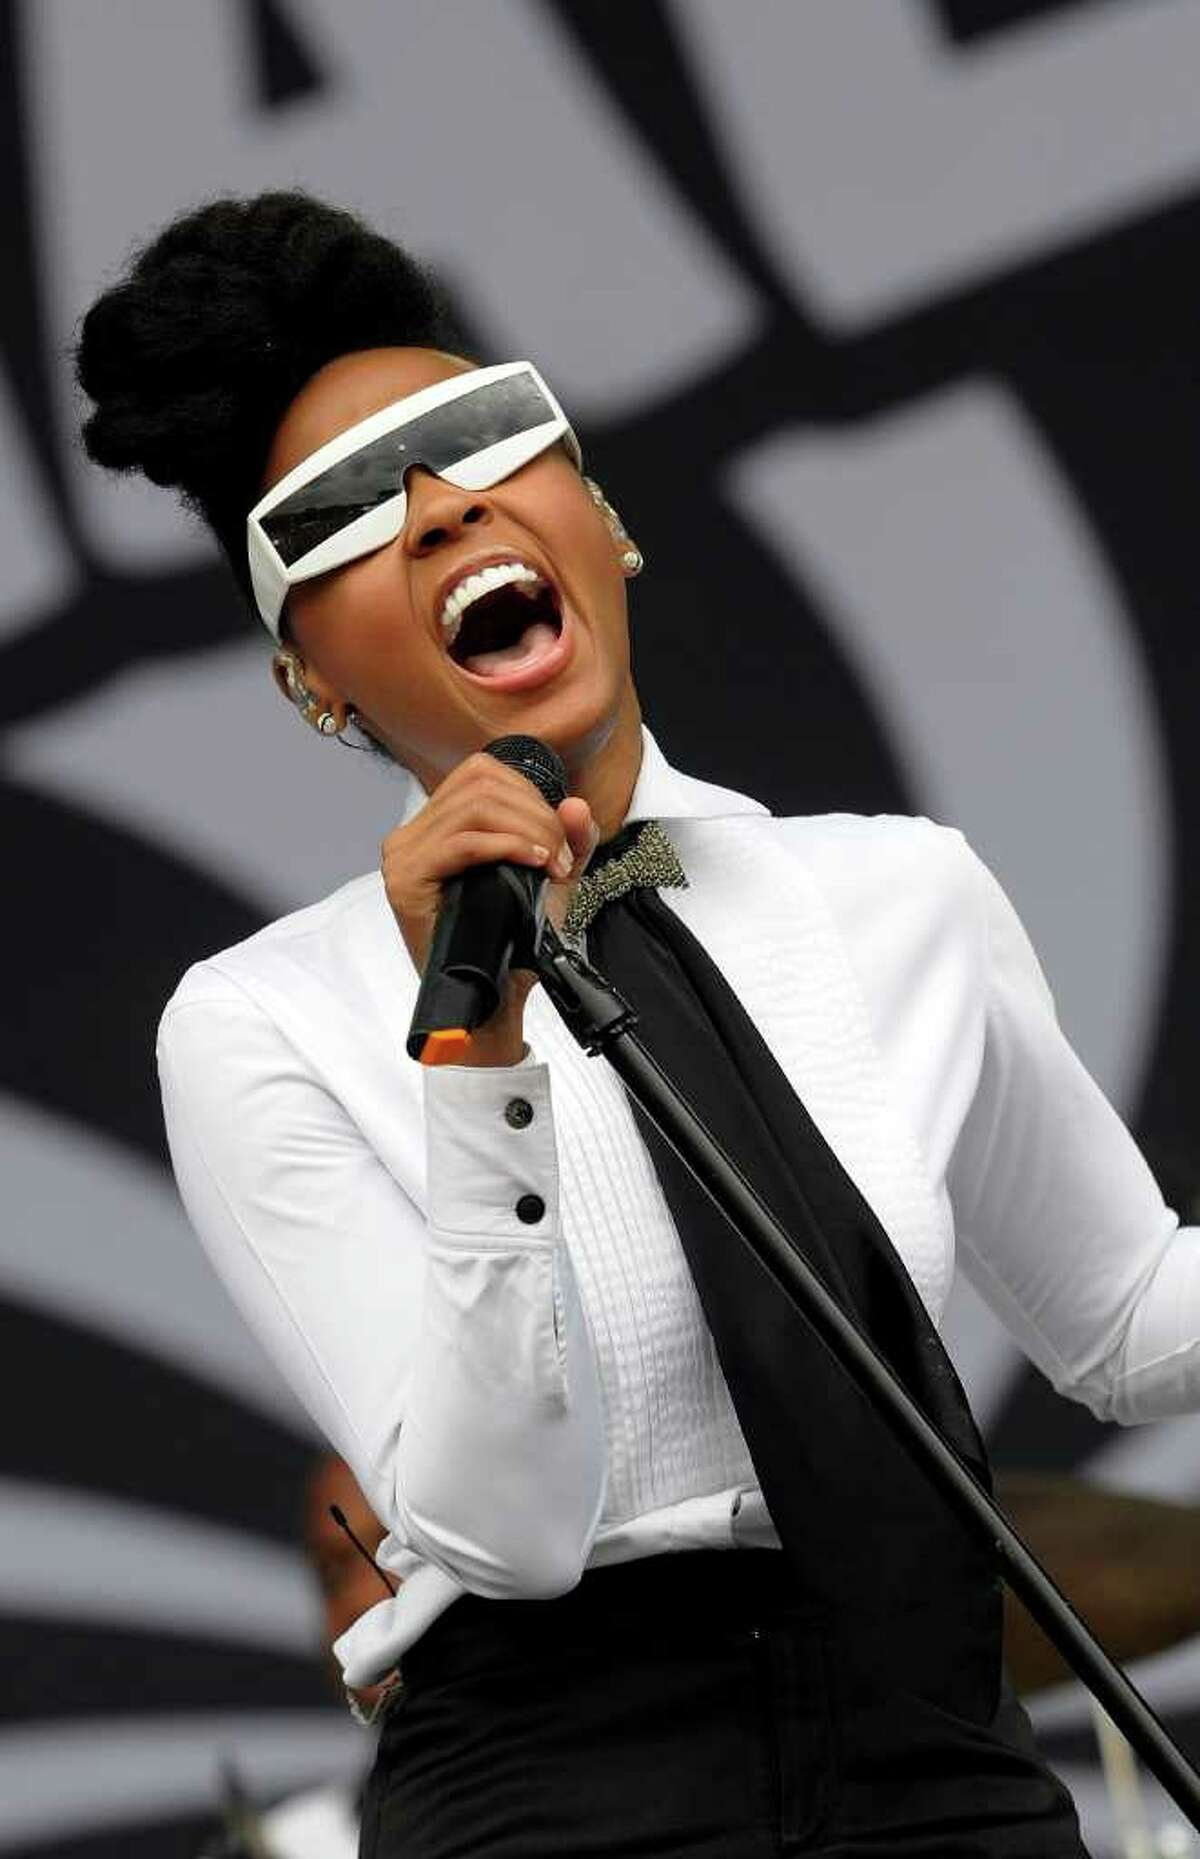 Singer and style icon Janelle Monáe is headed for Marymoor Park in June. Will you be there?